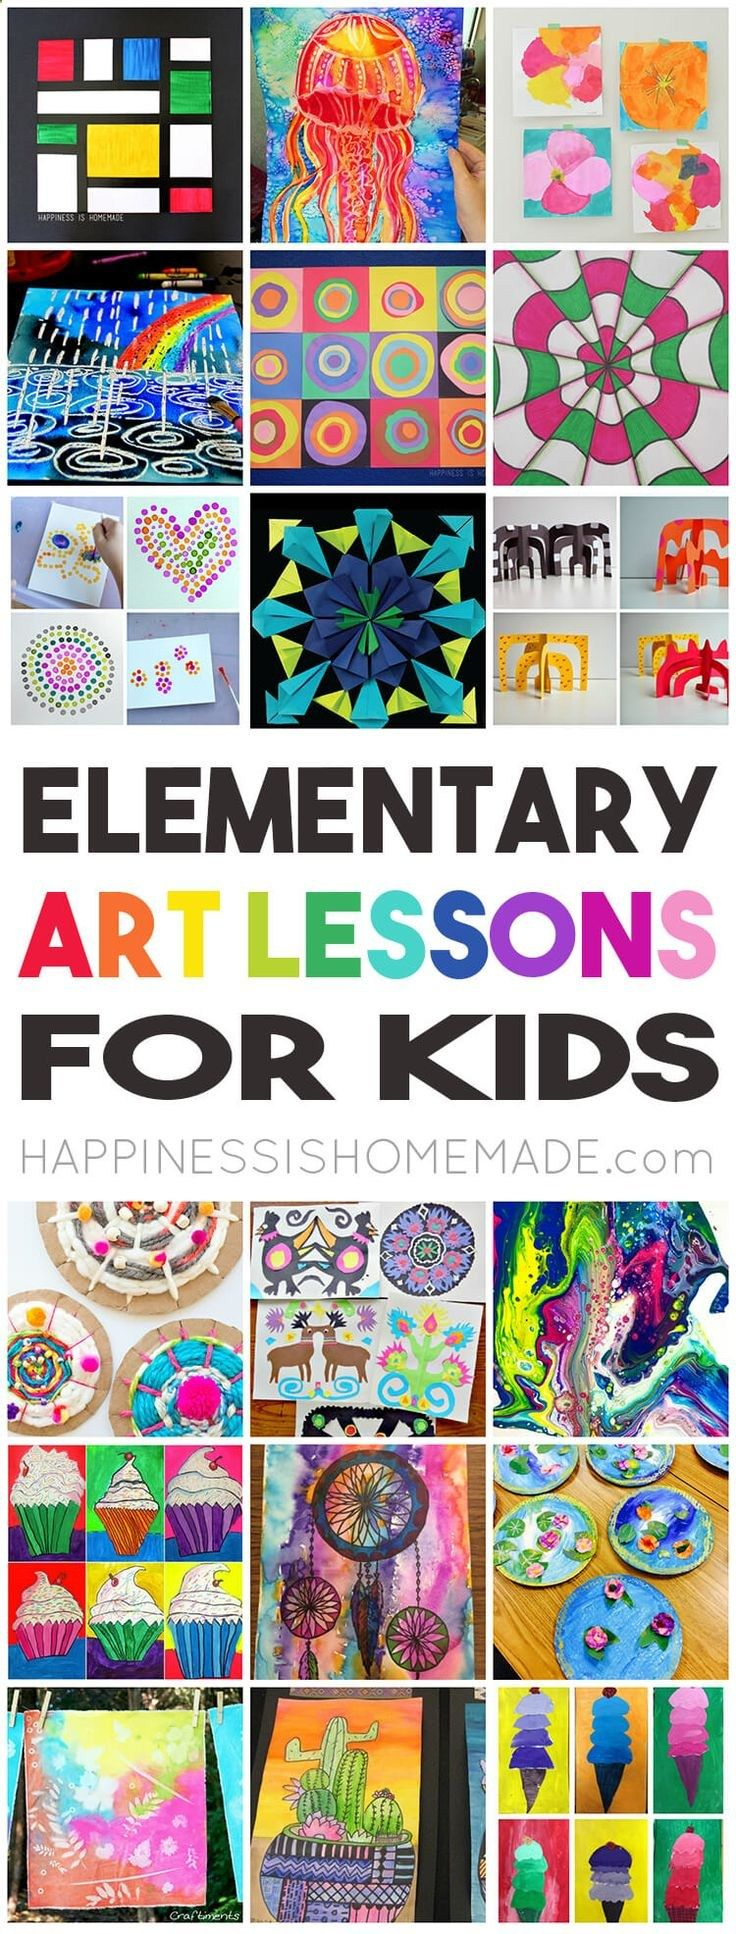 36 Elementary Art Lessons for Kids - one for every week of the school year! Perfect for homeschool families, teachers, scout leaders, and parents! via @hiHomemadeBlog